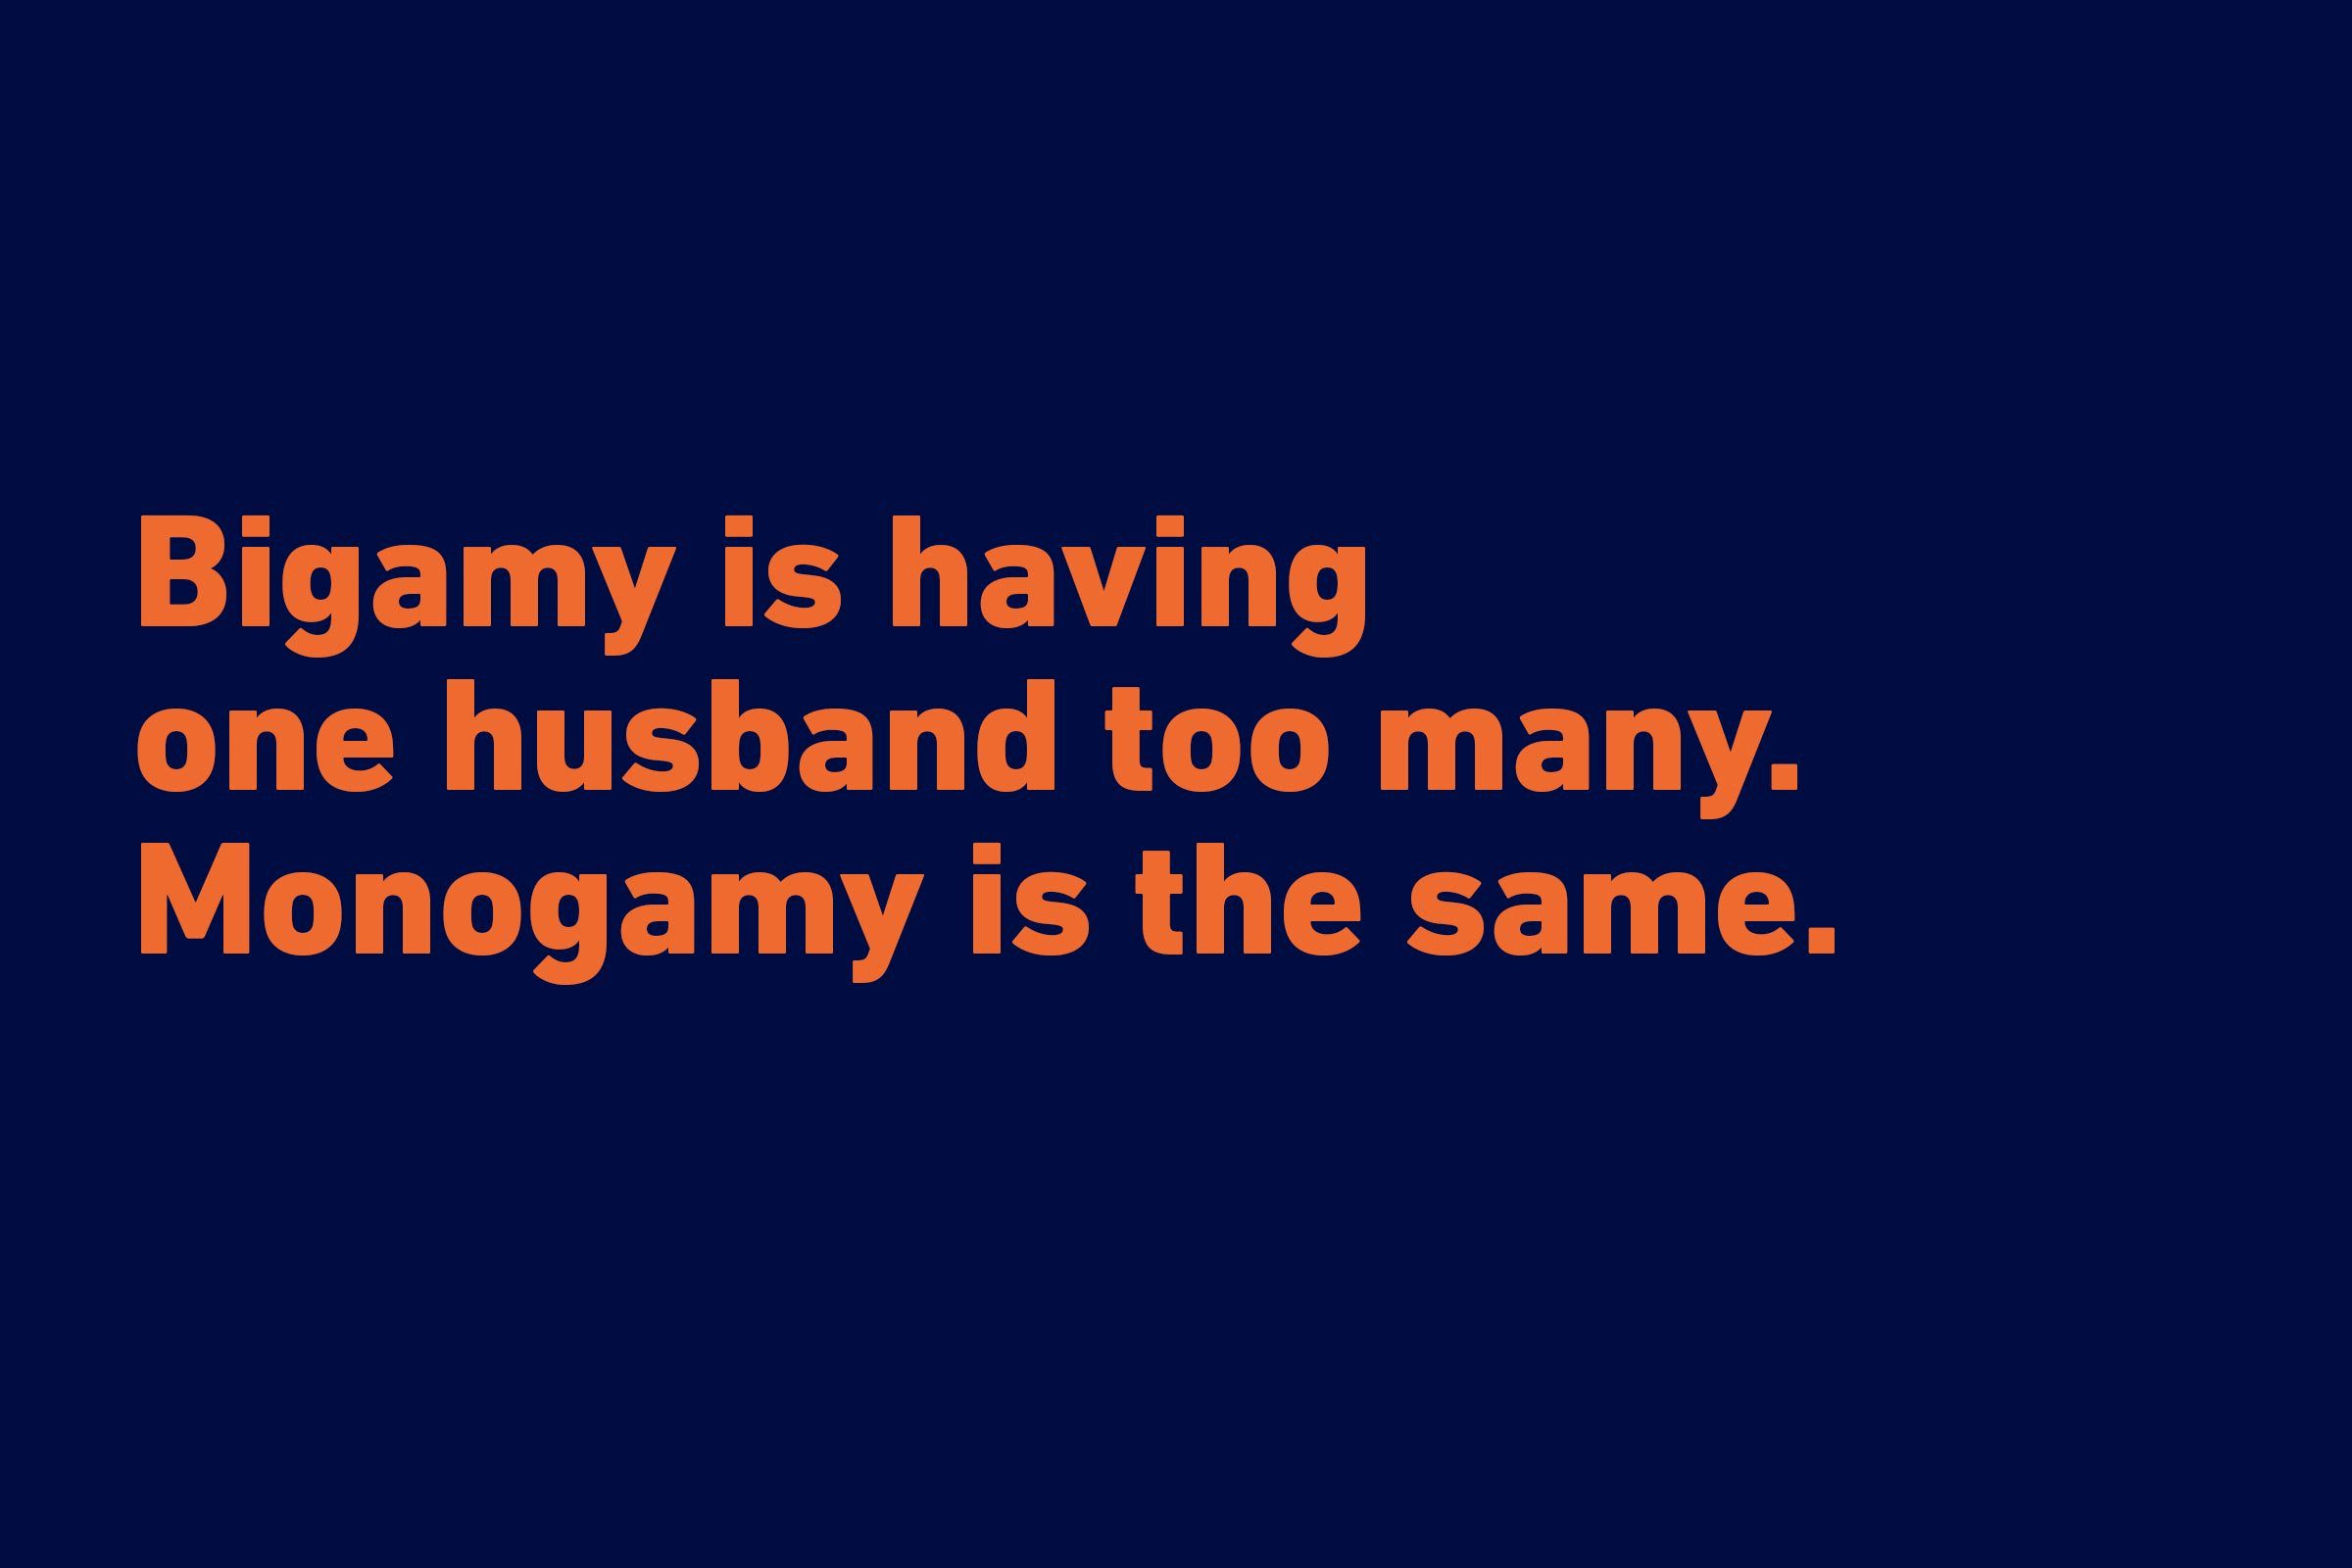 Wedding jokes about monogamy